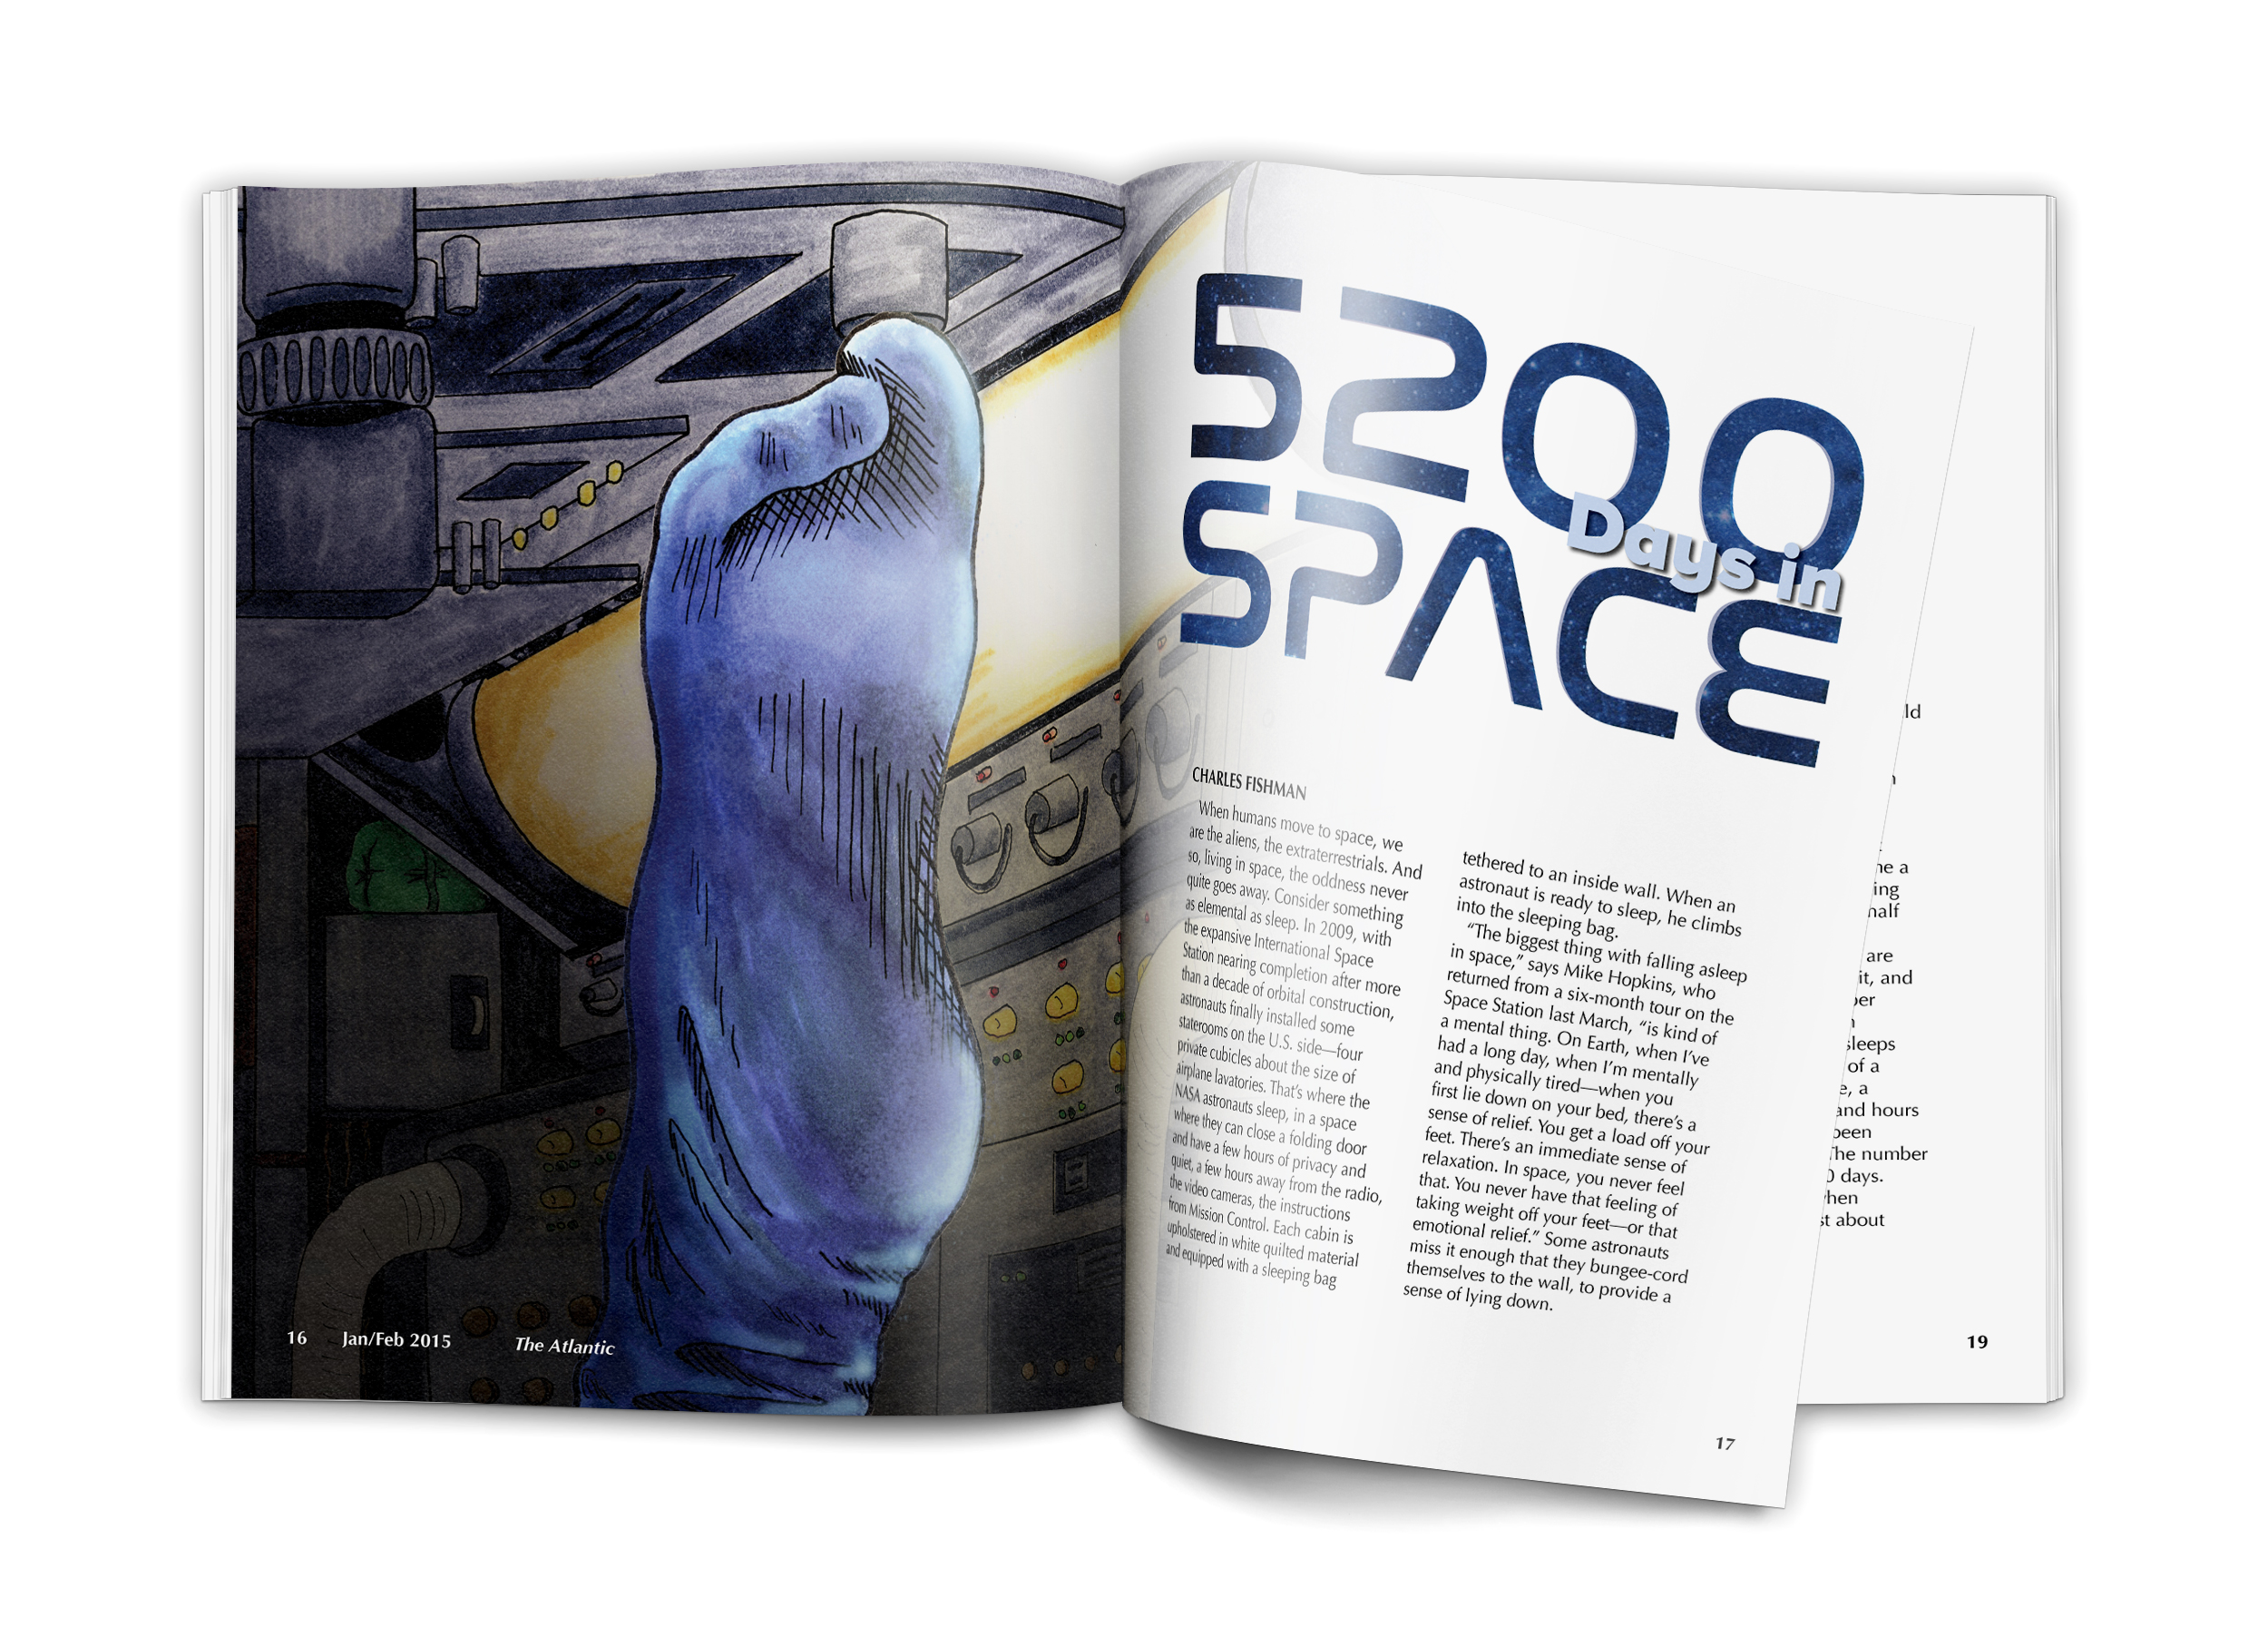 5200-Days-in-Space-Mockup.jpg